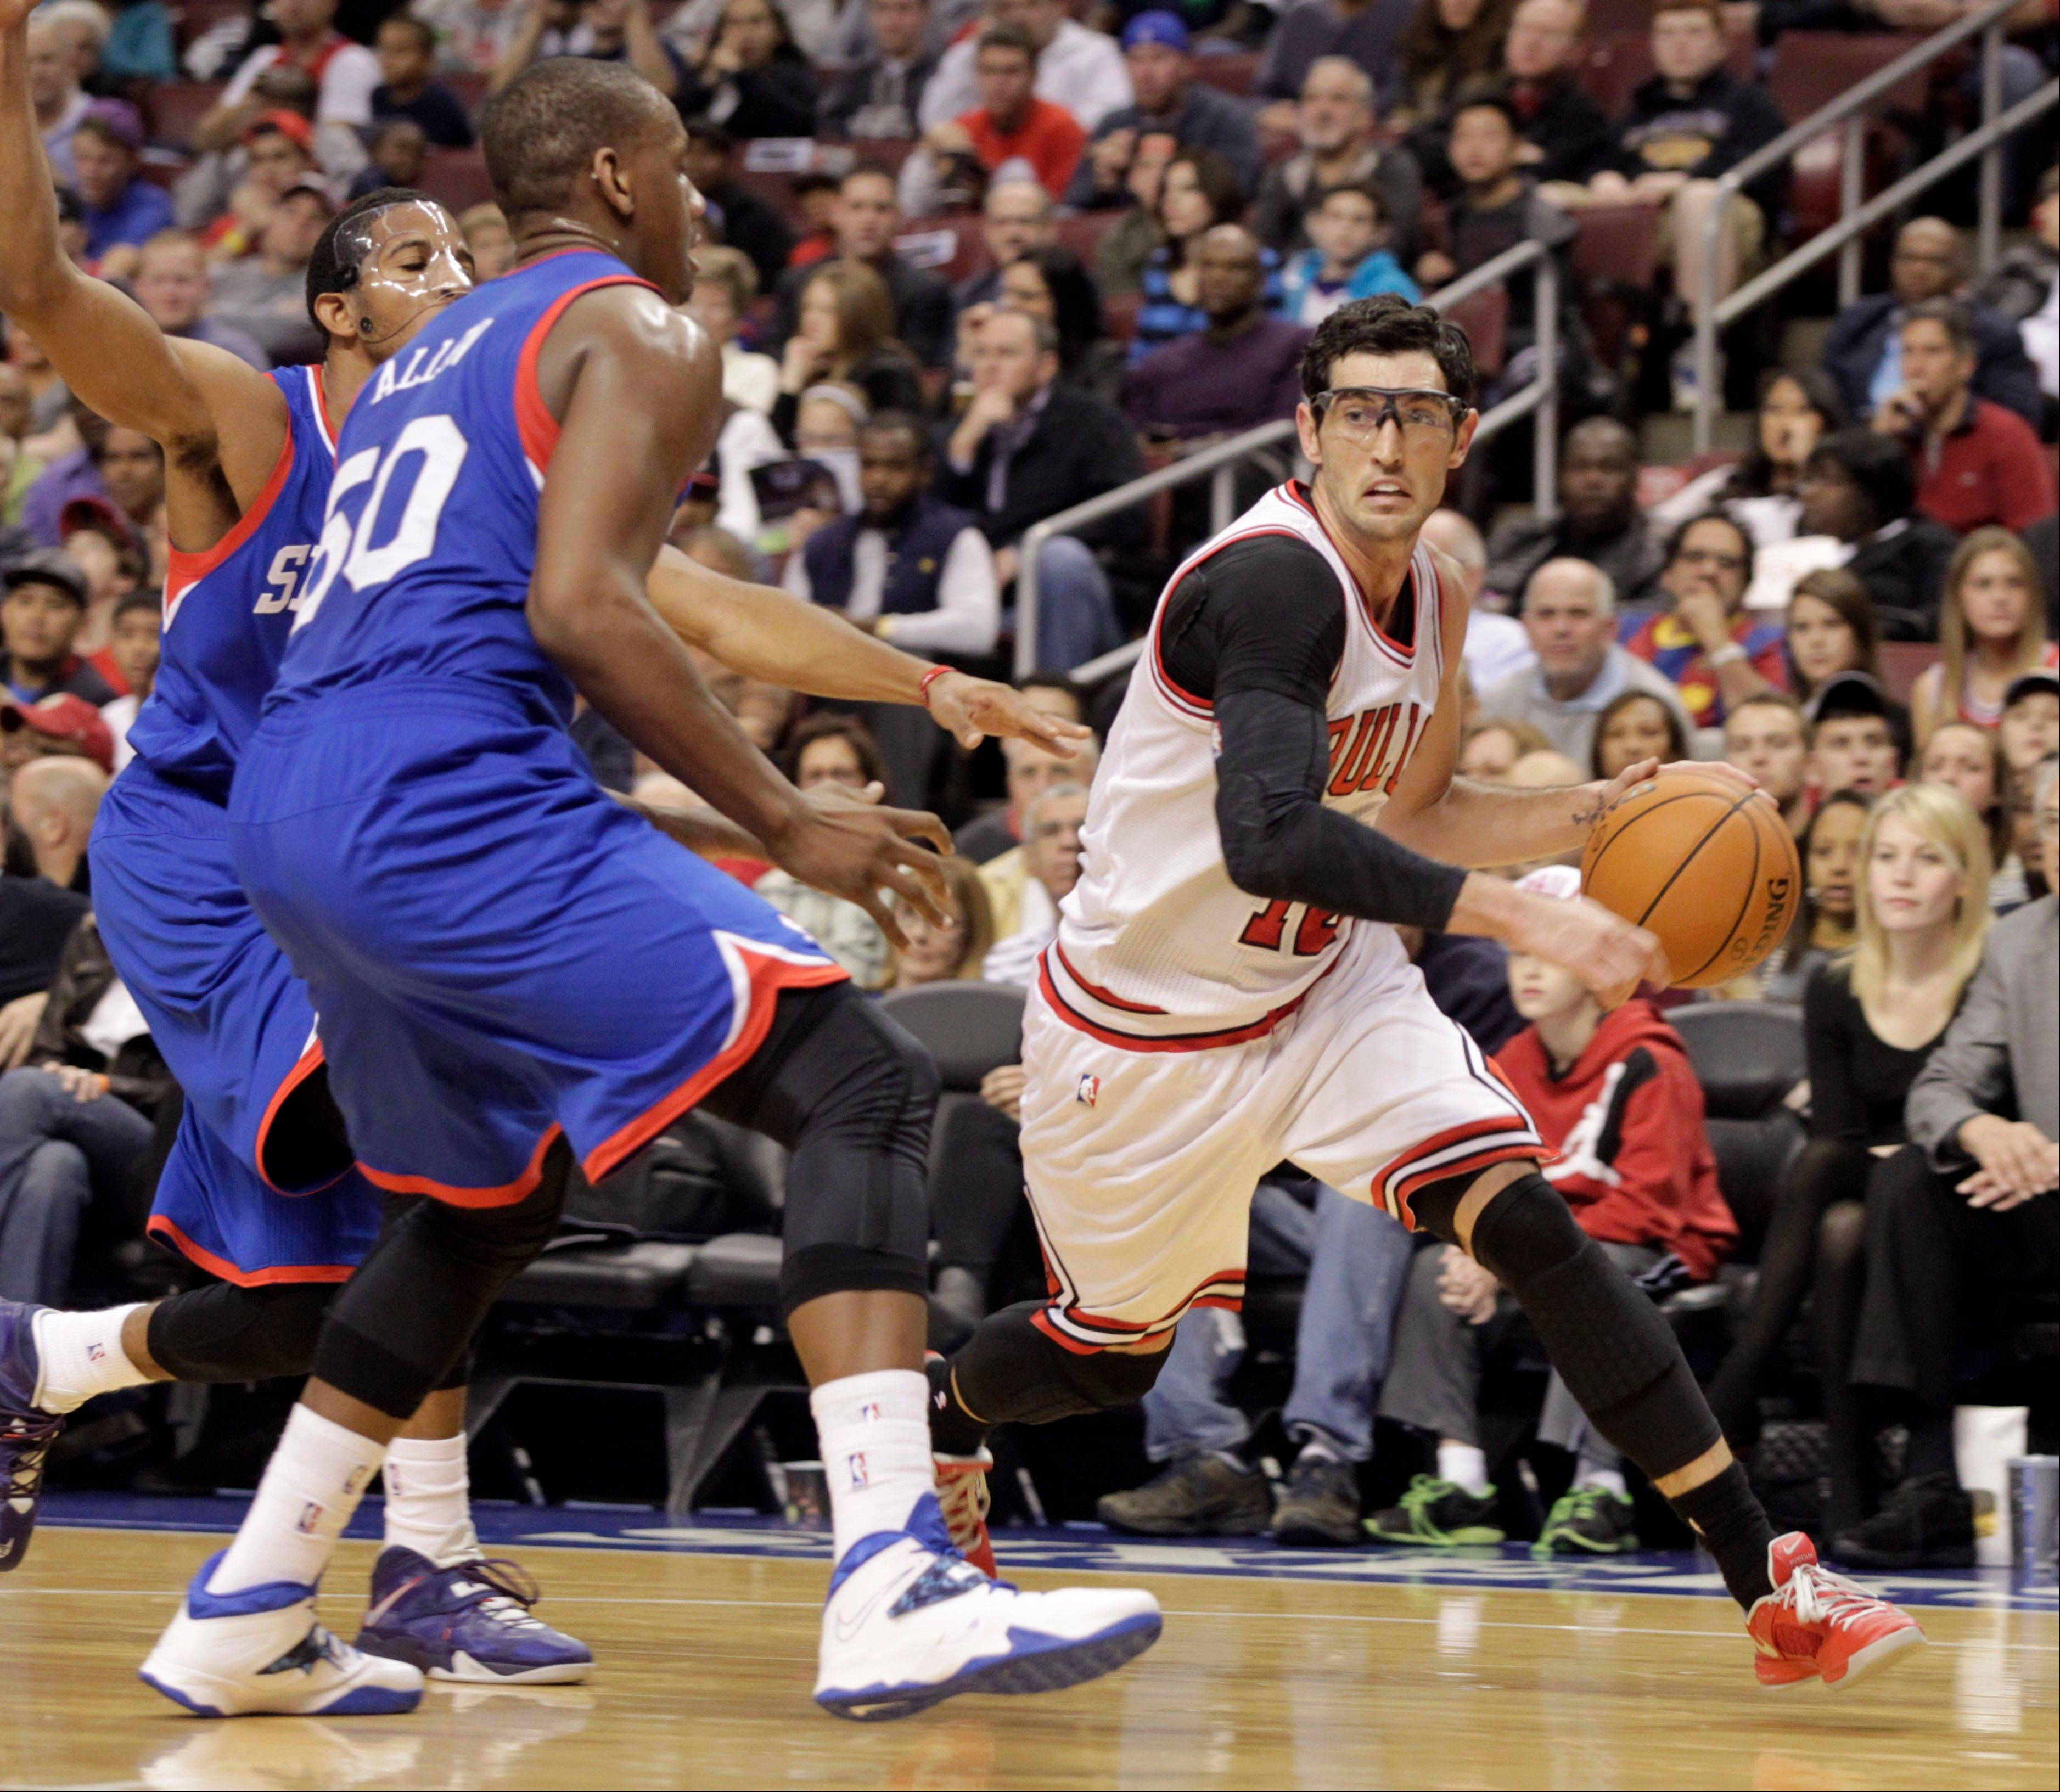 The Chicago Bulls' Kirk Hinrich, right, drives against Philadelphia 76ers' Lavoy Allen (50) in the first half Saturday in Philadelphia.